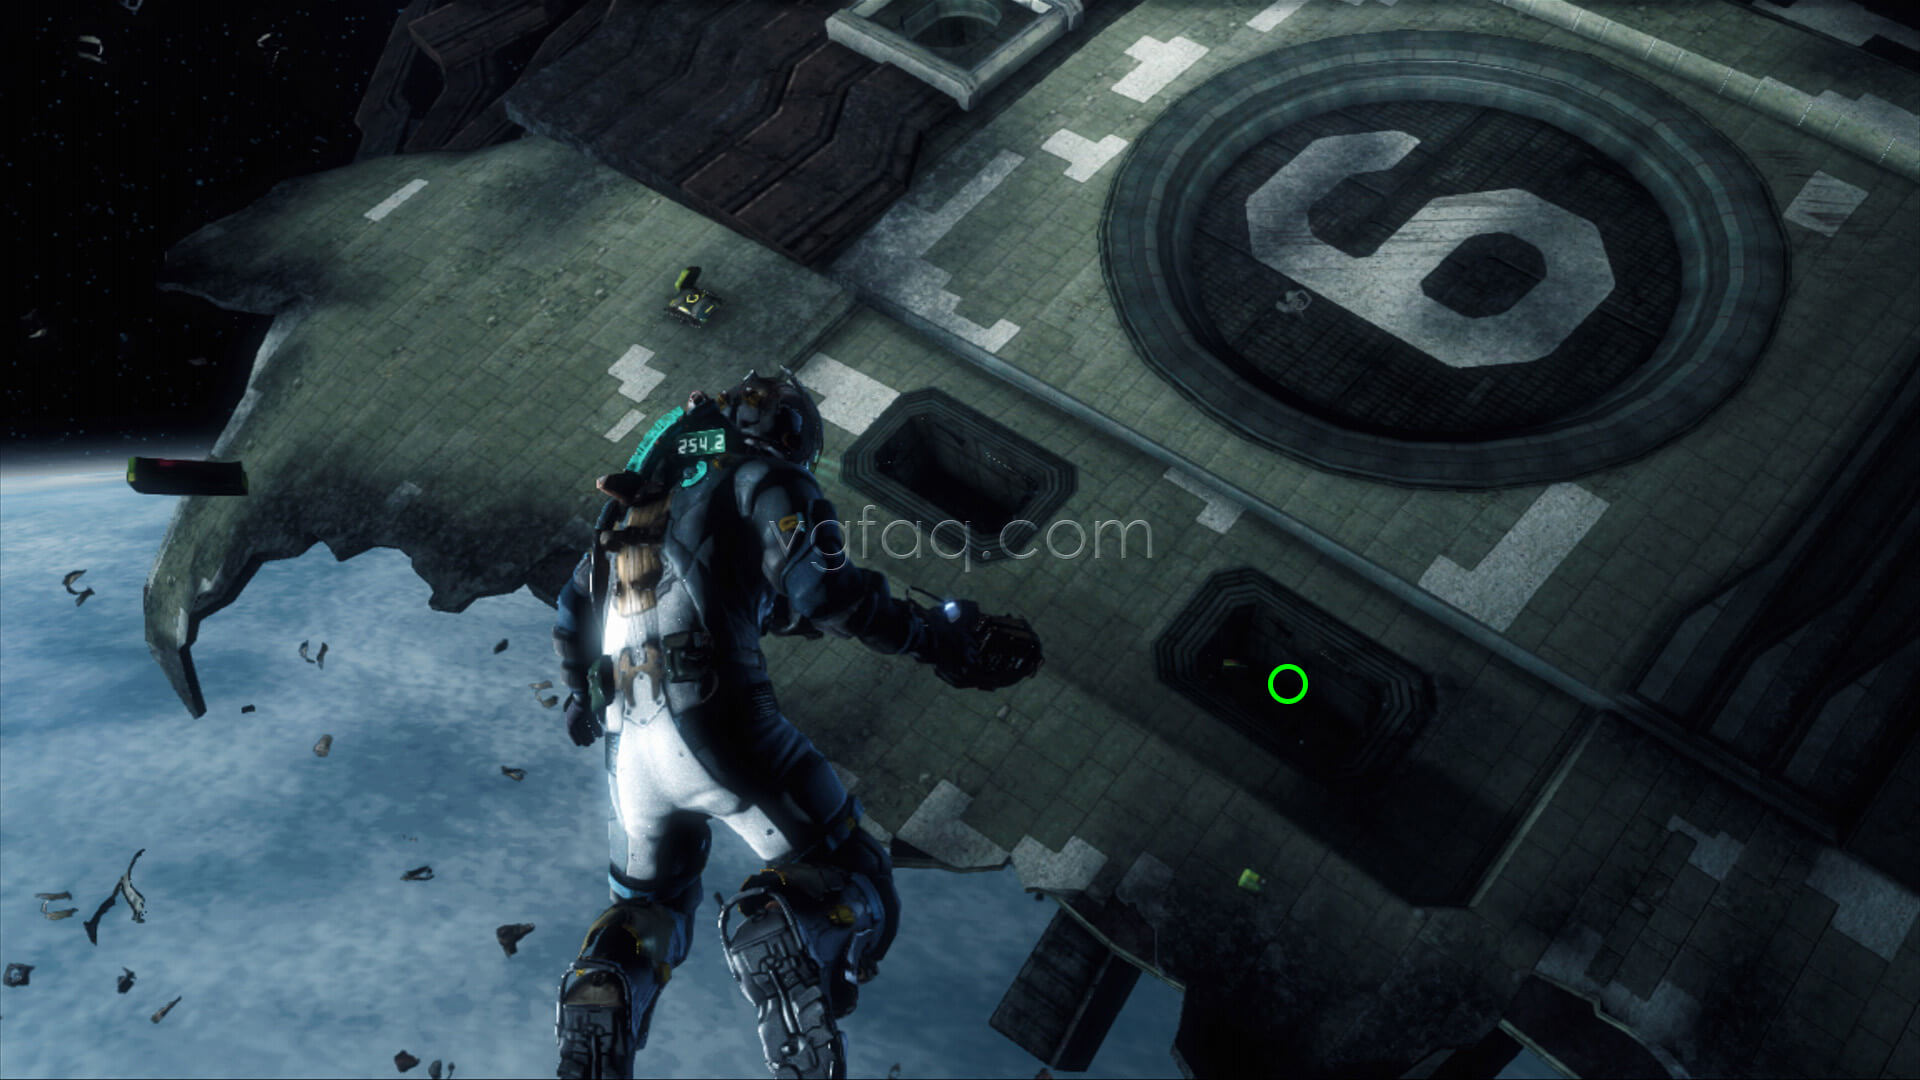 Dead space 3 chapter 4 collectibles locations vgfaq dead space 3 cms brusilov weapon part 1 location malvernweather Image collections